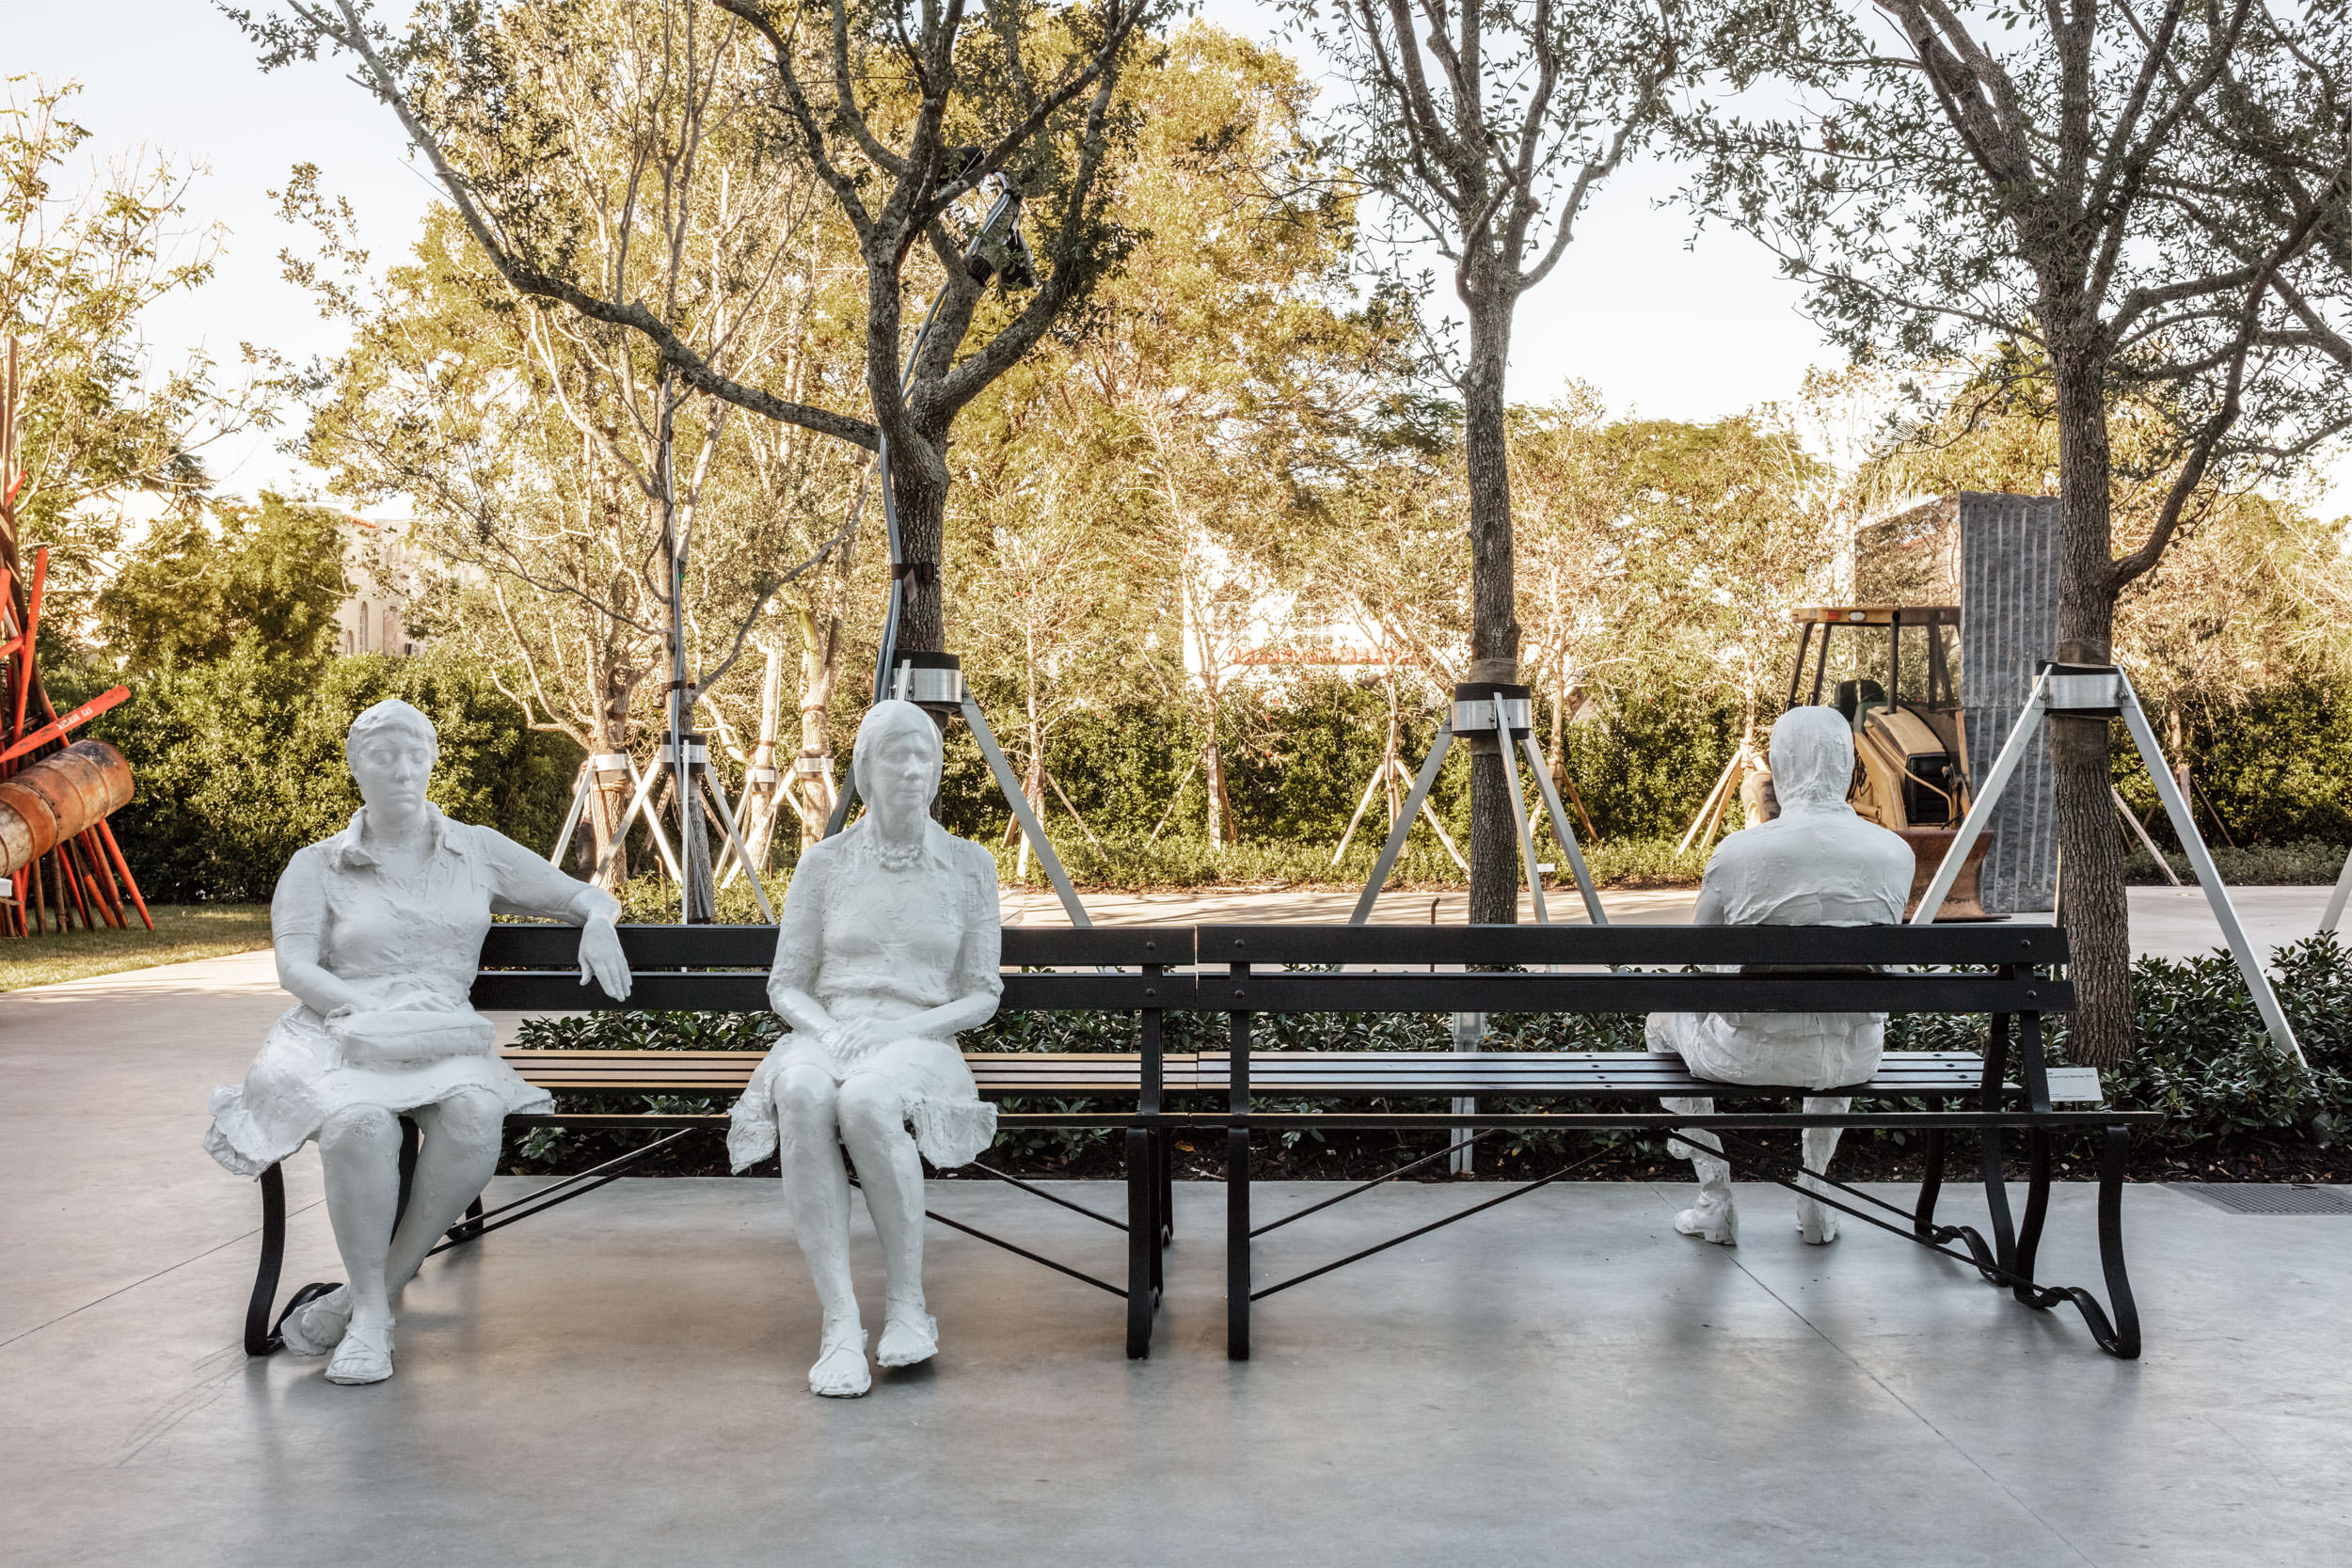 George Segal, Three Figures and Four Benches, 1979. Painted bronze. Collection of Martin Z. Margulies Foundation. Photo: Fredrik Nilsen Studio.